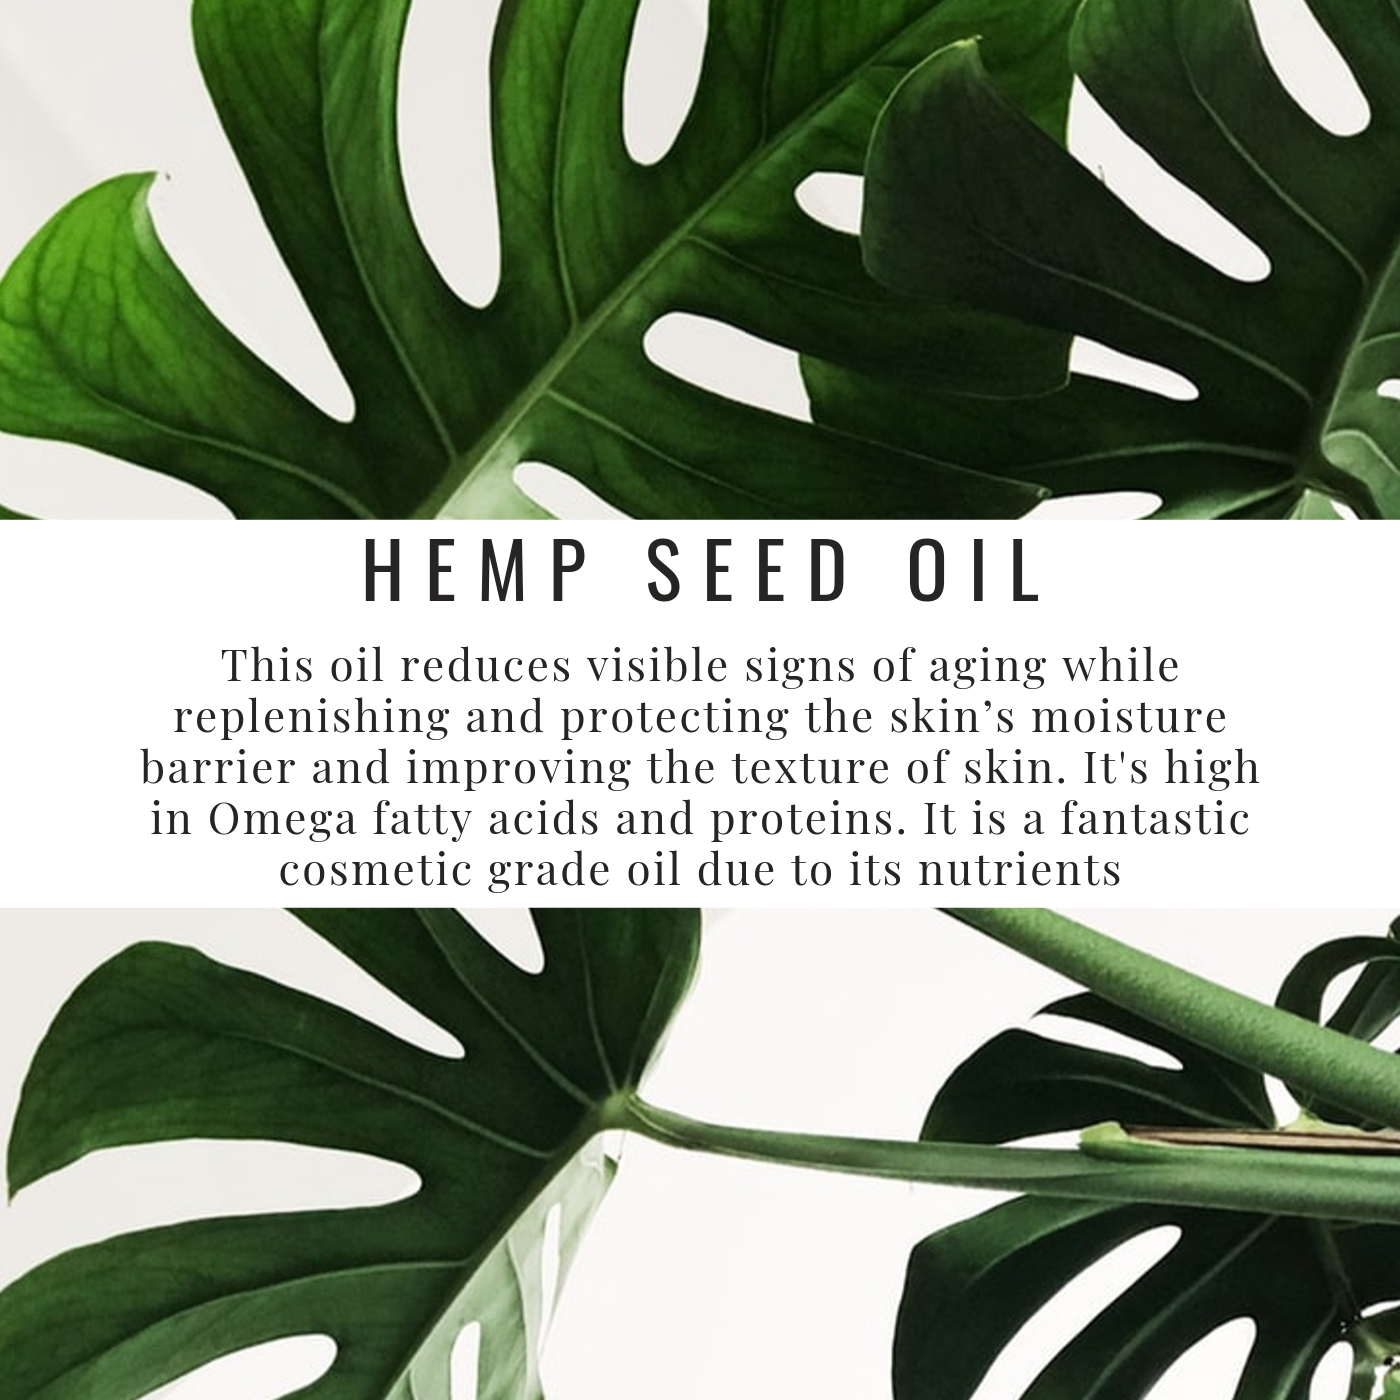 Find it in all of our CBD products, as this is the carrier oil that our CBD is extracted in.